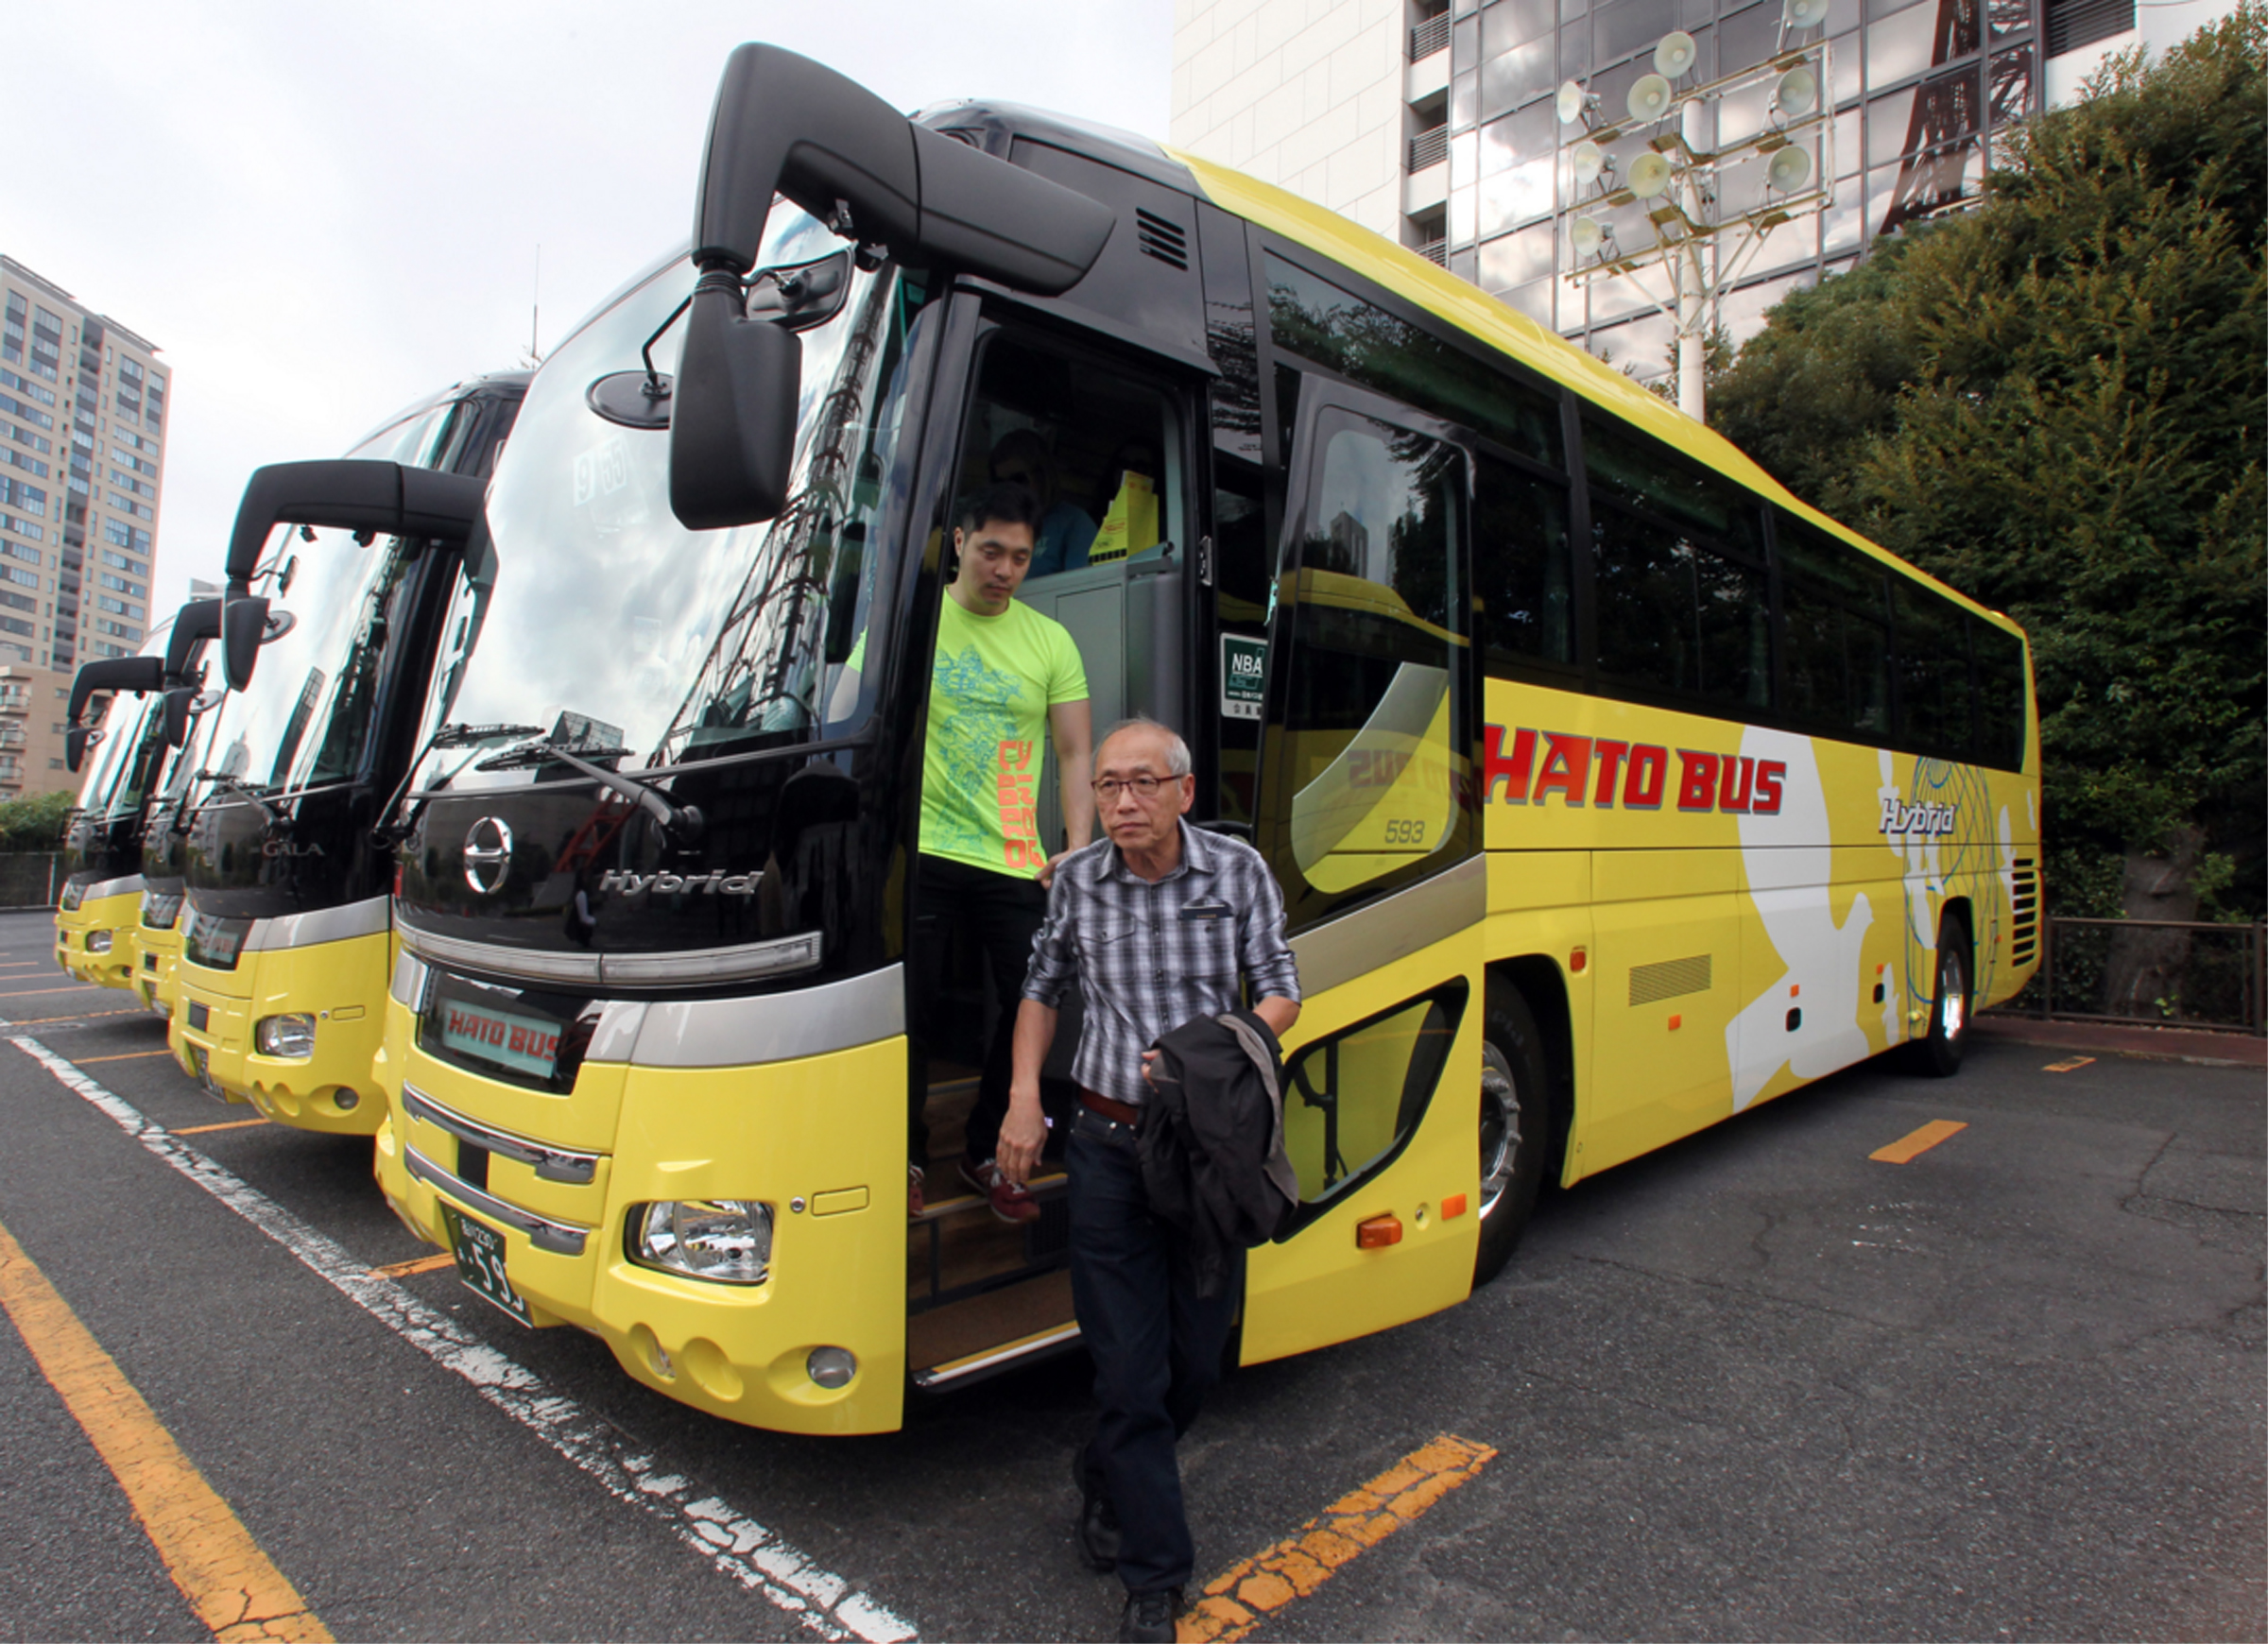 Tourists step off a coach during a sightseeing tour operated by Hato Bus Co. in Tokyo on Nov. 5. | BLOOMBERG